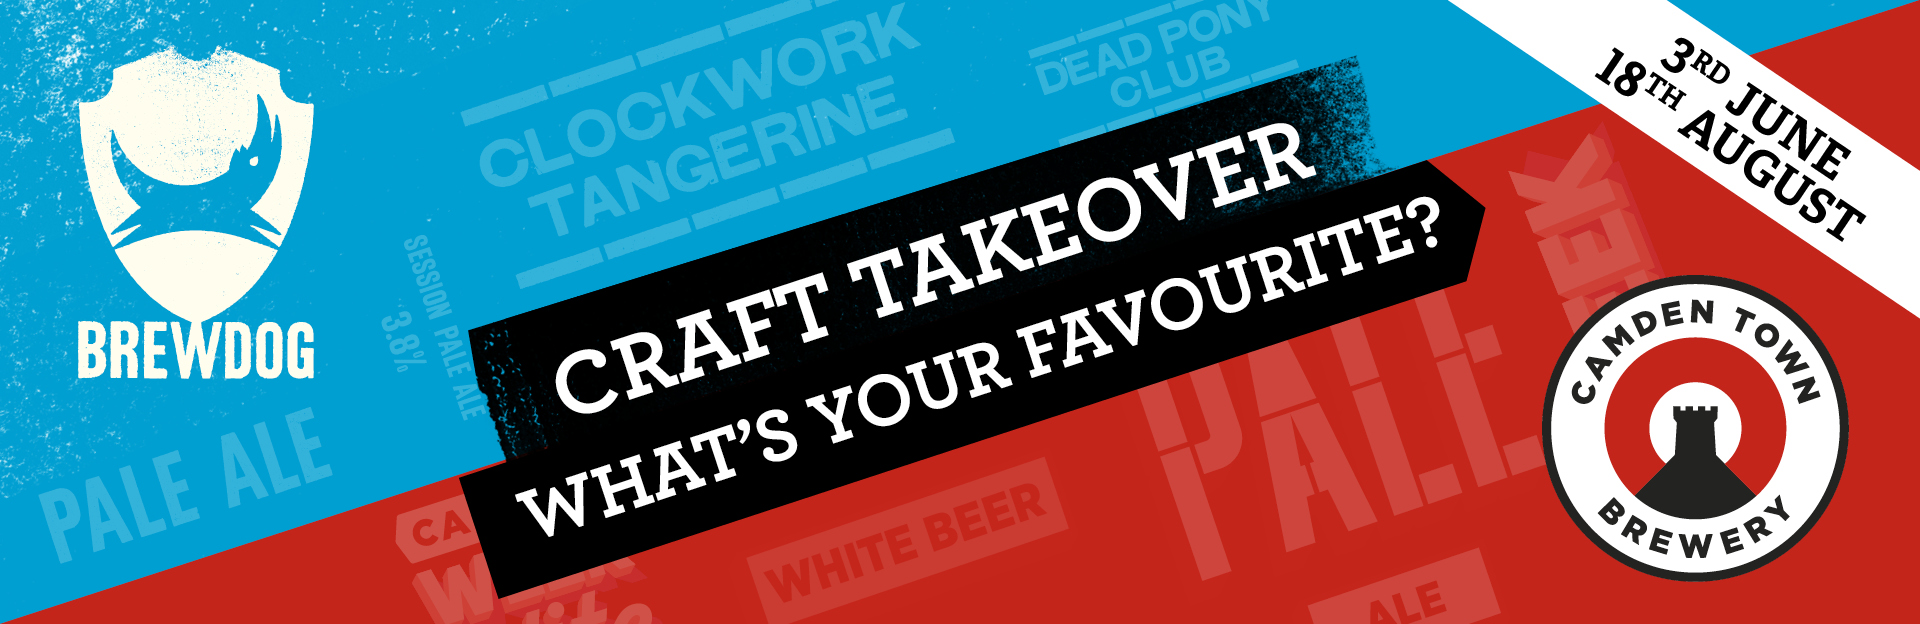 Craft Takeover at The Original Oak